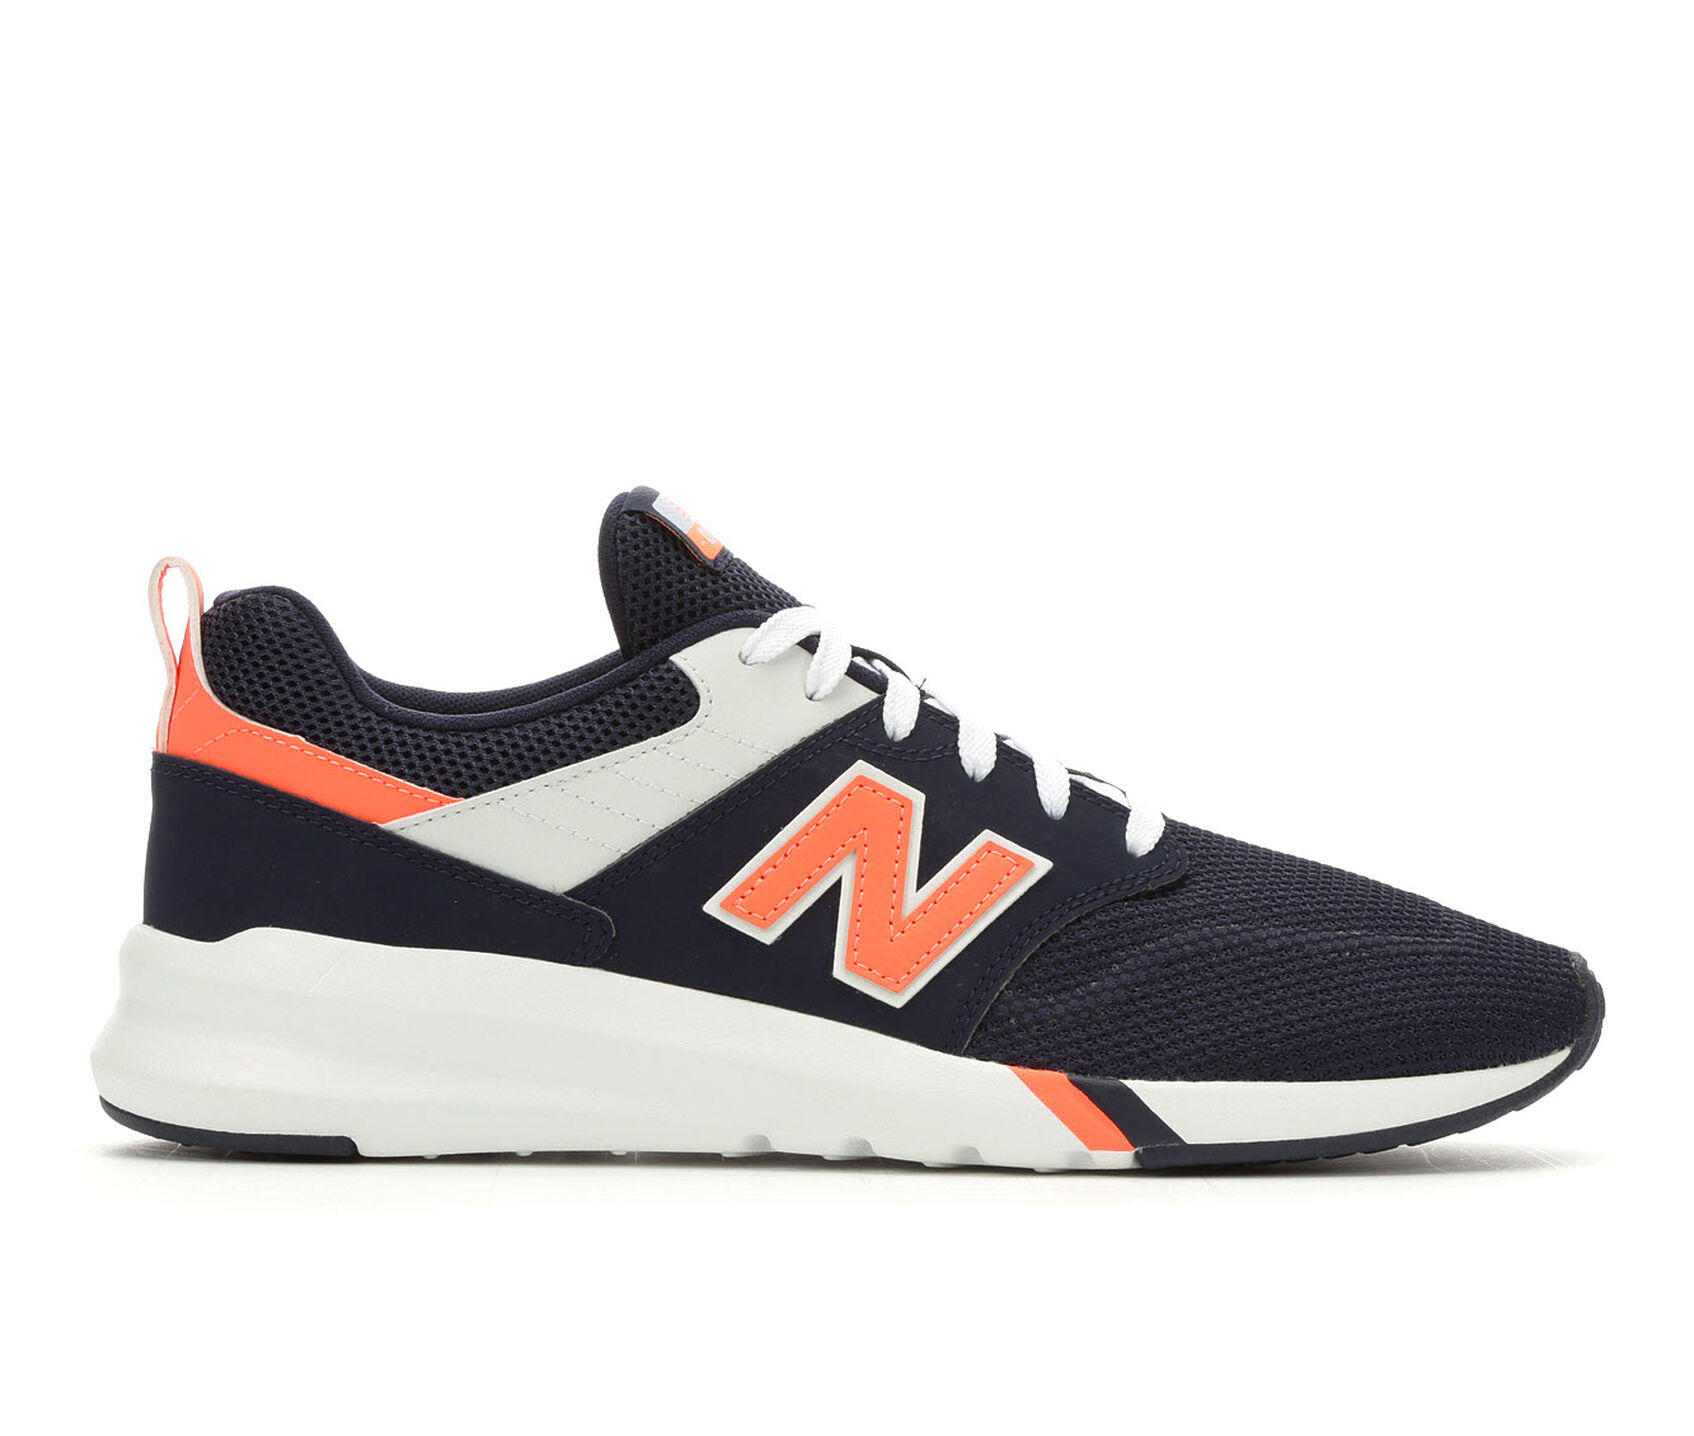 3a19b7b7f2641 Men's New Balance 009 Retro Sneakers | Shoe Carnival